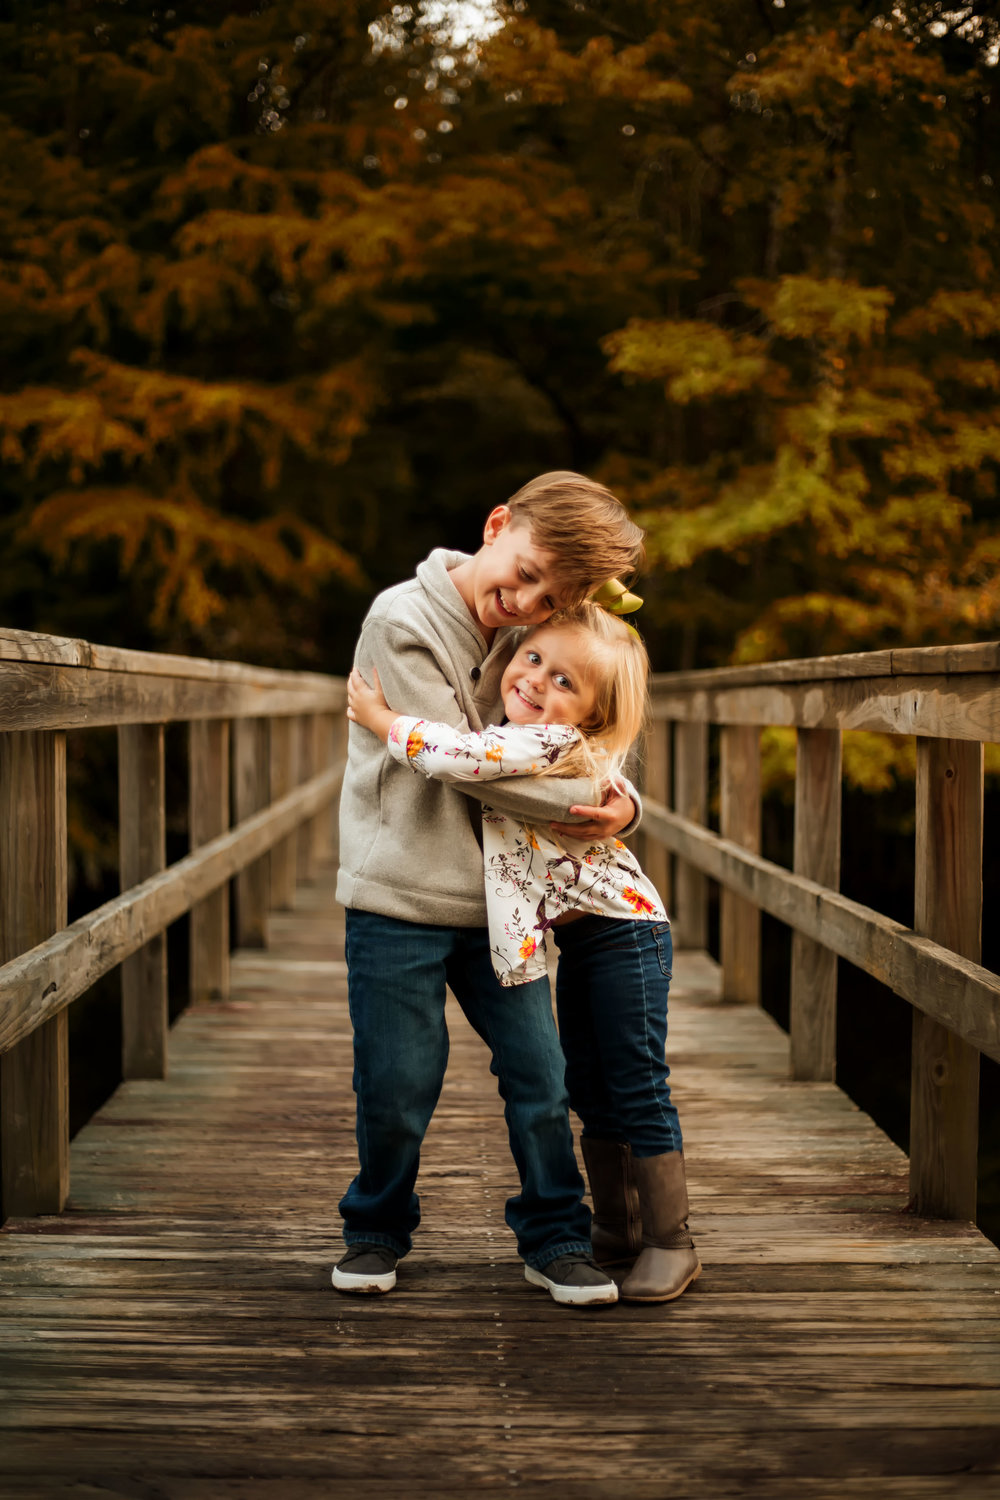 Fall-Woods-Mini-Session-Wilmington-NC-Tiffany-Abruzzo-Photography-14.jpg